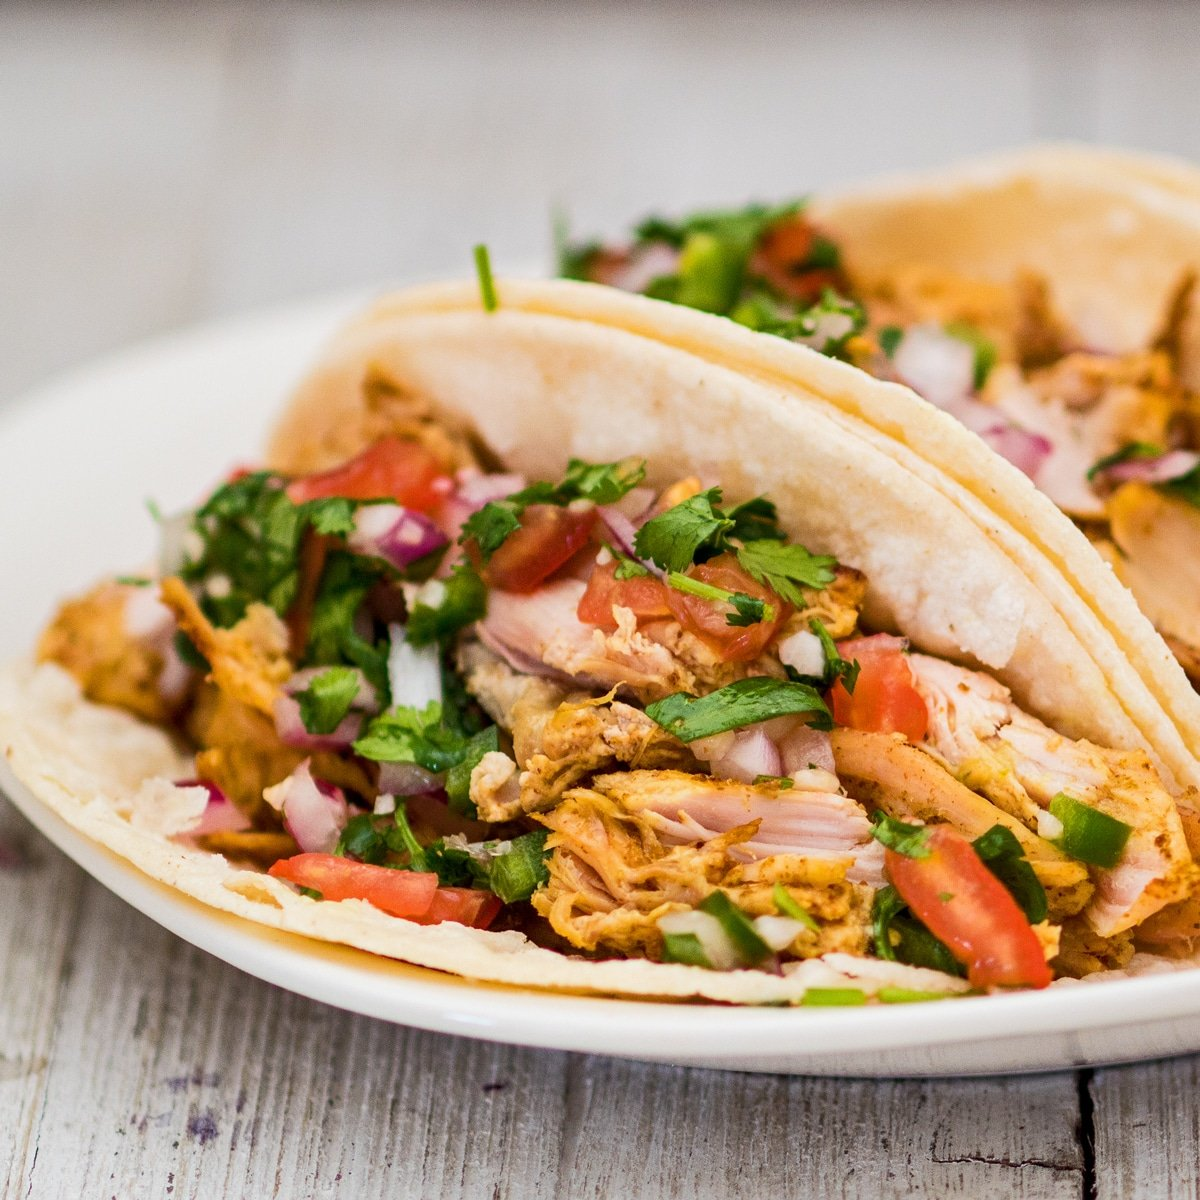 square image showing a close up view of the turkey carnitas garnished and served with fresh homemade pico de gallo served on white corn tortillas on a white plate with light wood grain background